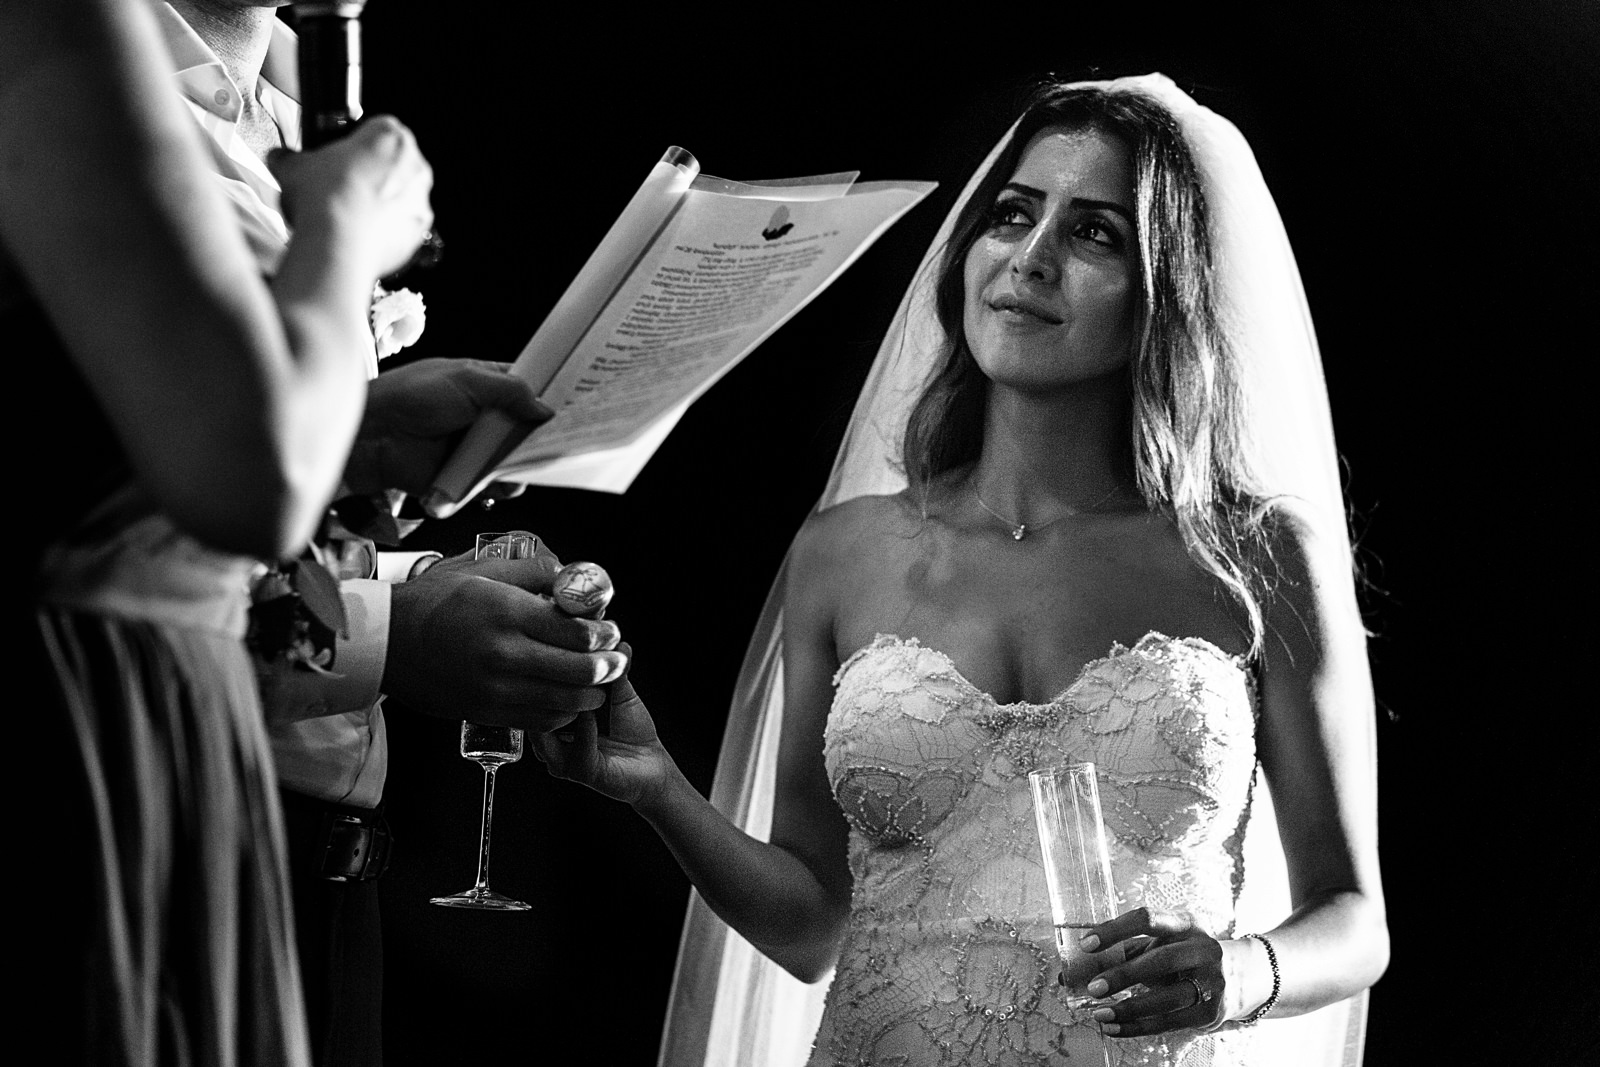 Bride looking at her mom during a speech while the groom holds her hand